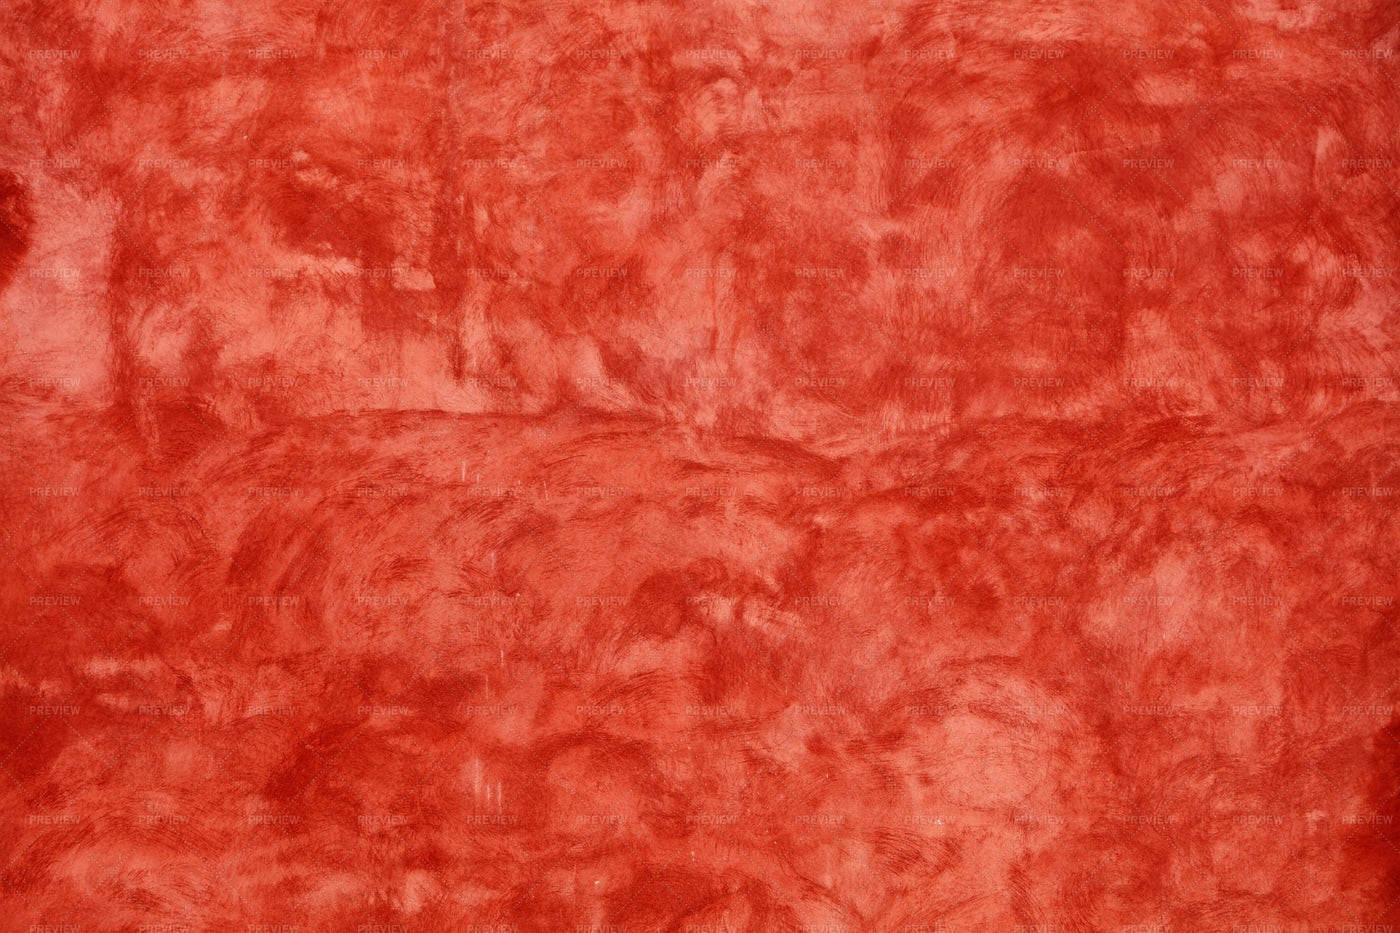 Grunge Red Painted Plaster Wall: Stock Photos